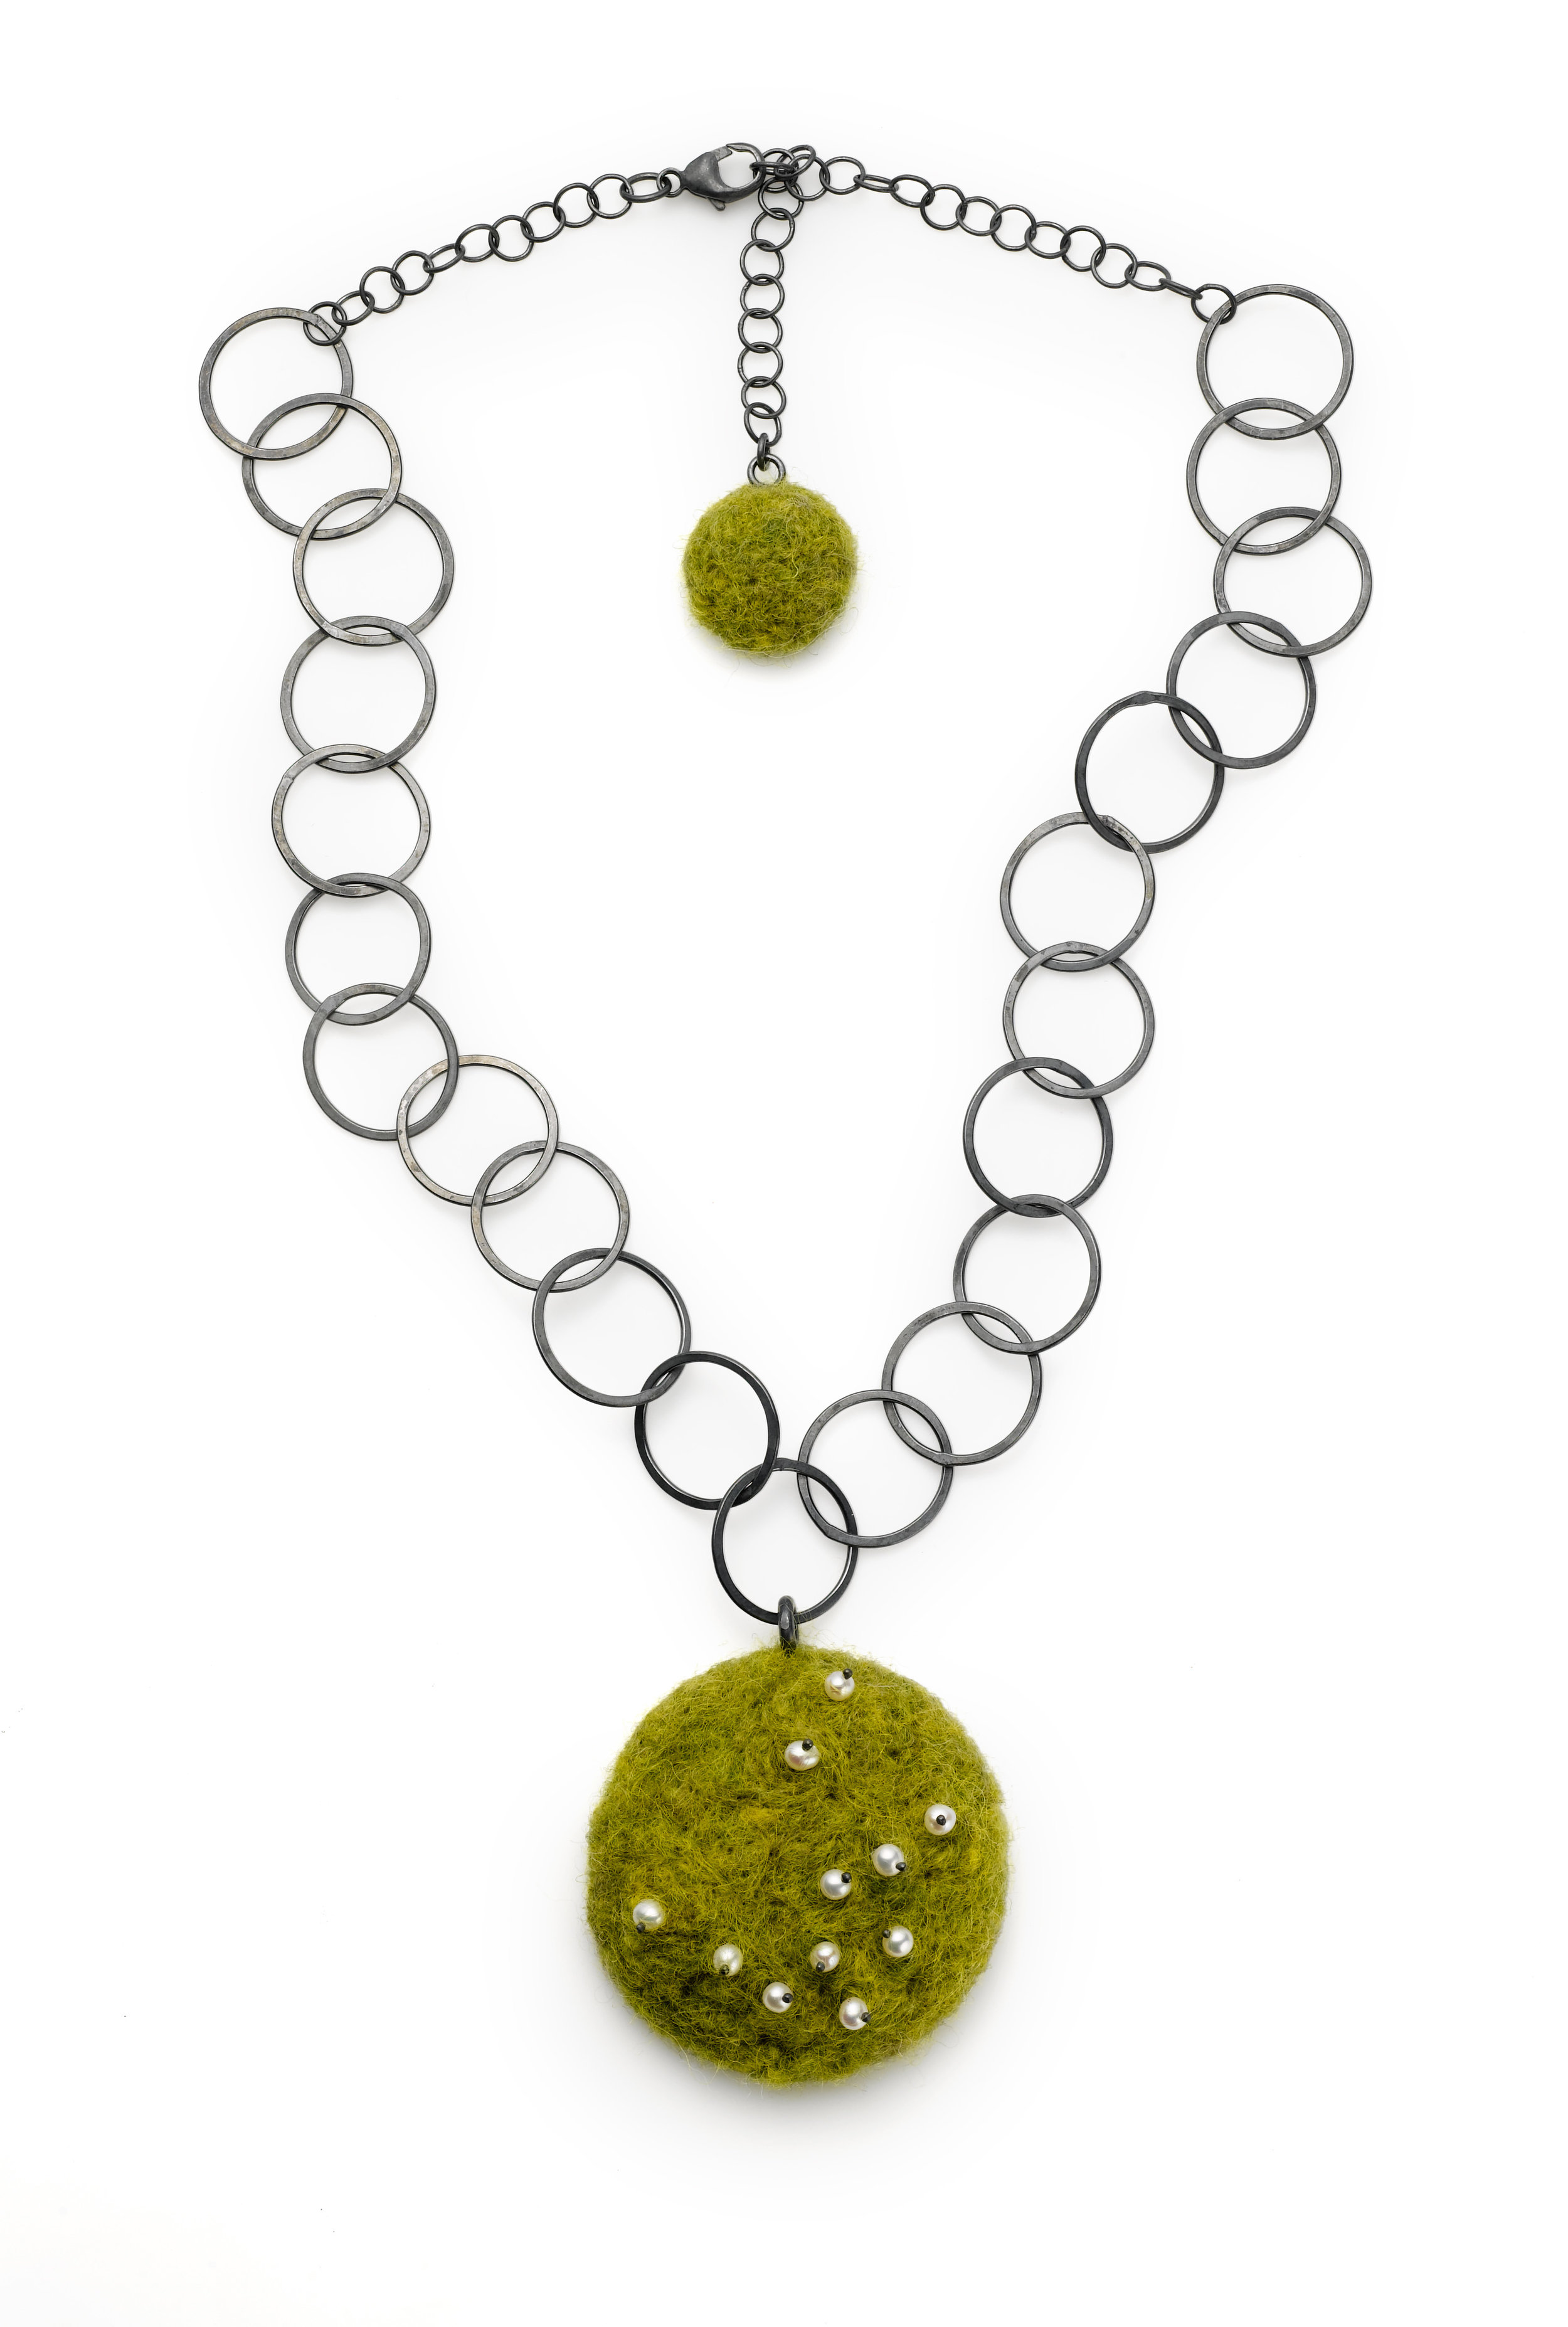 "Oxidized sterling silver hand fabricated 19"" chain with green wool felted pendant 1.5"" and pearls. The hand fabricated chain relates to the felt form which completely covers the silver skeleton that helps to define it's round shape."